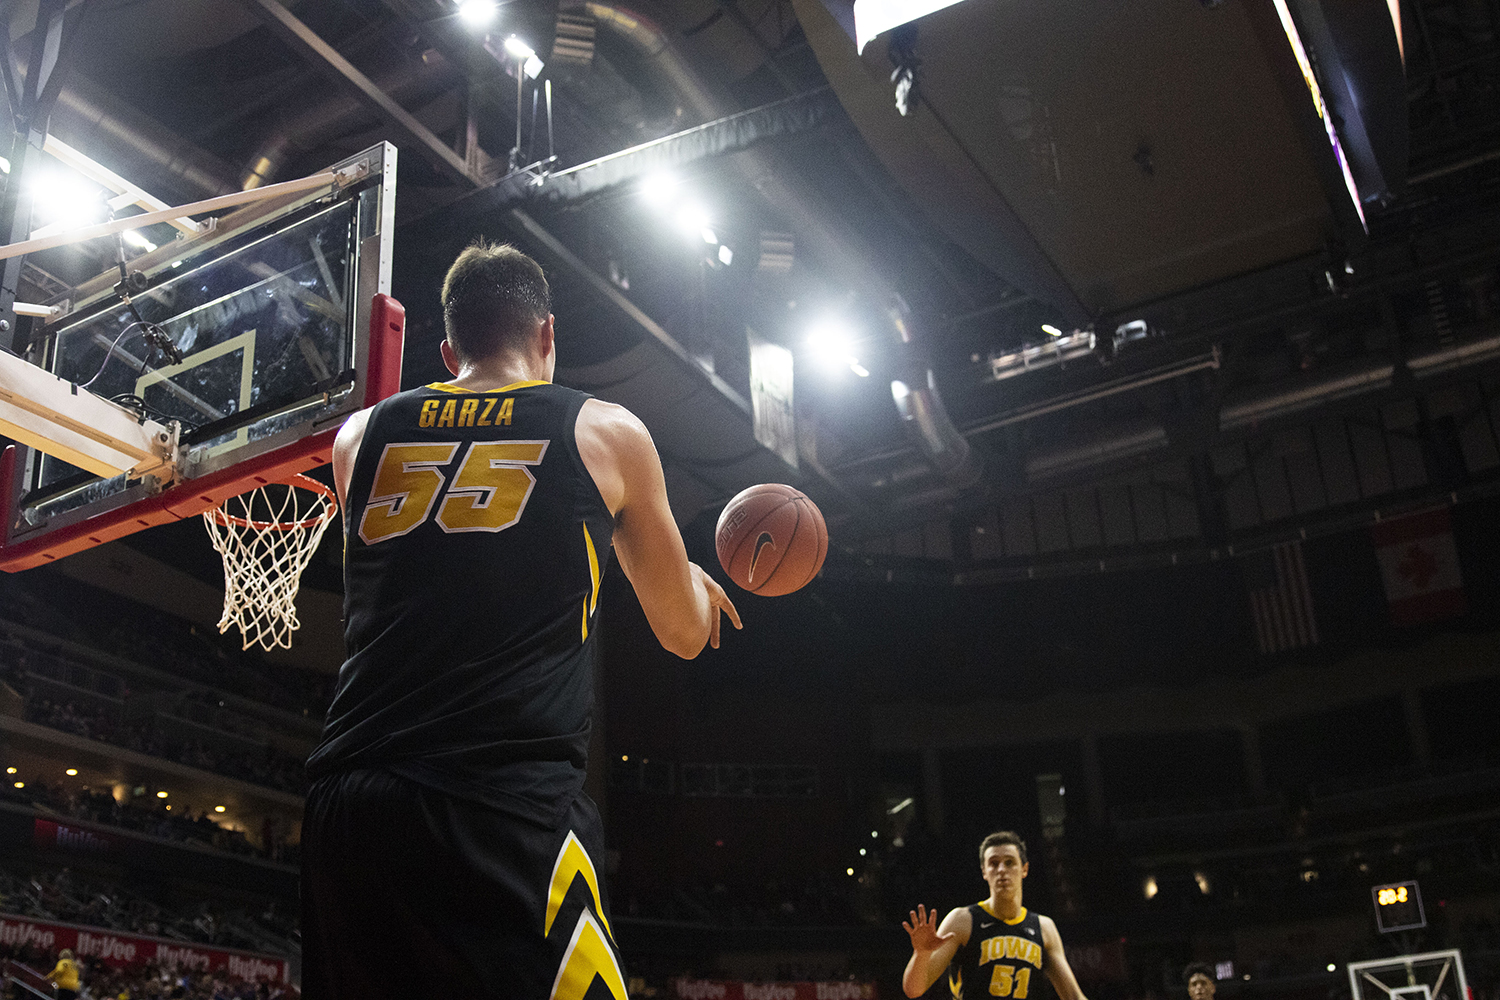 Iowa%27s+Luka+Garza+passes+the+ball+in+to+Nicholas+Baer+during+the+Iowa%2FUNI+men%27s+basketball+game+at+Wells+Fargo+Arena+in+Des+Moines+on+Saturday%2C+Dec.+15%2C+2018.+The+Hawkeyes+defeated+the+Panthers%2C+77-54.+